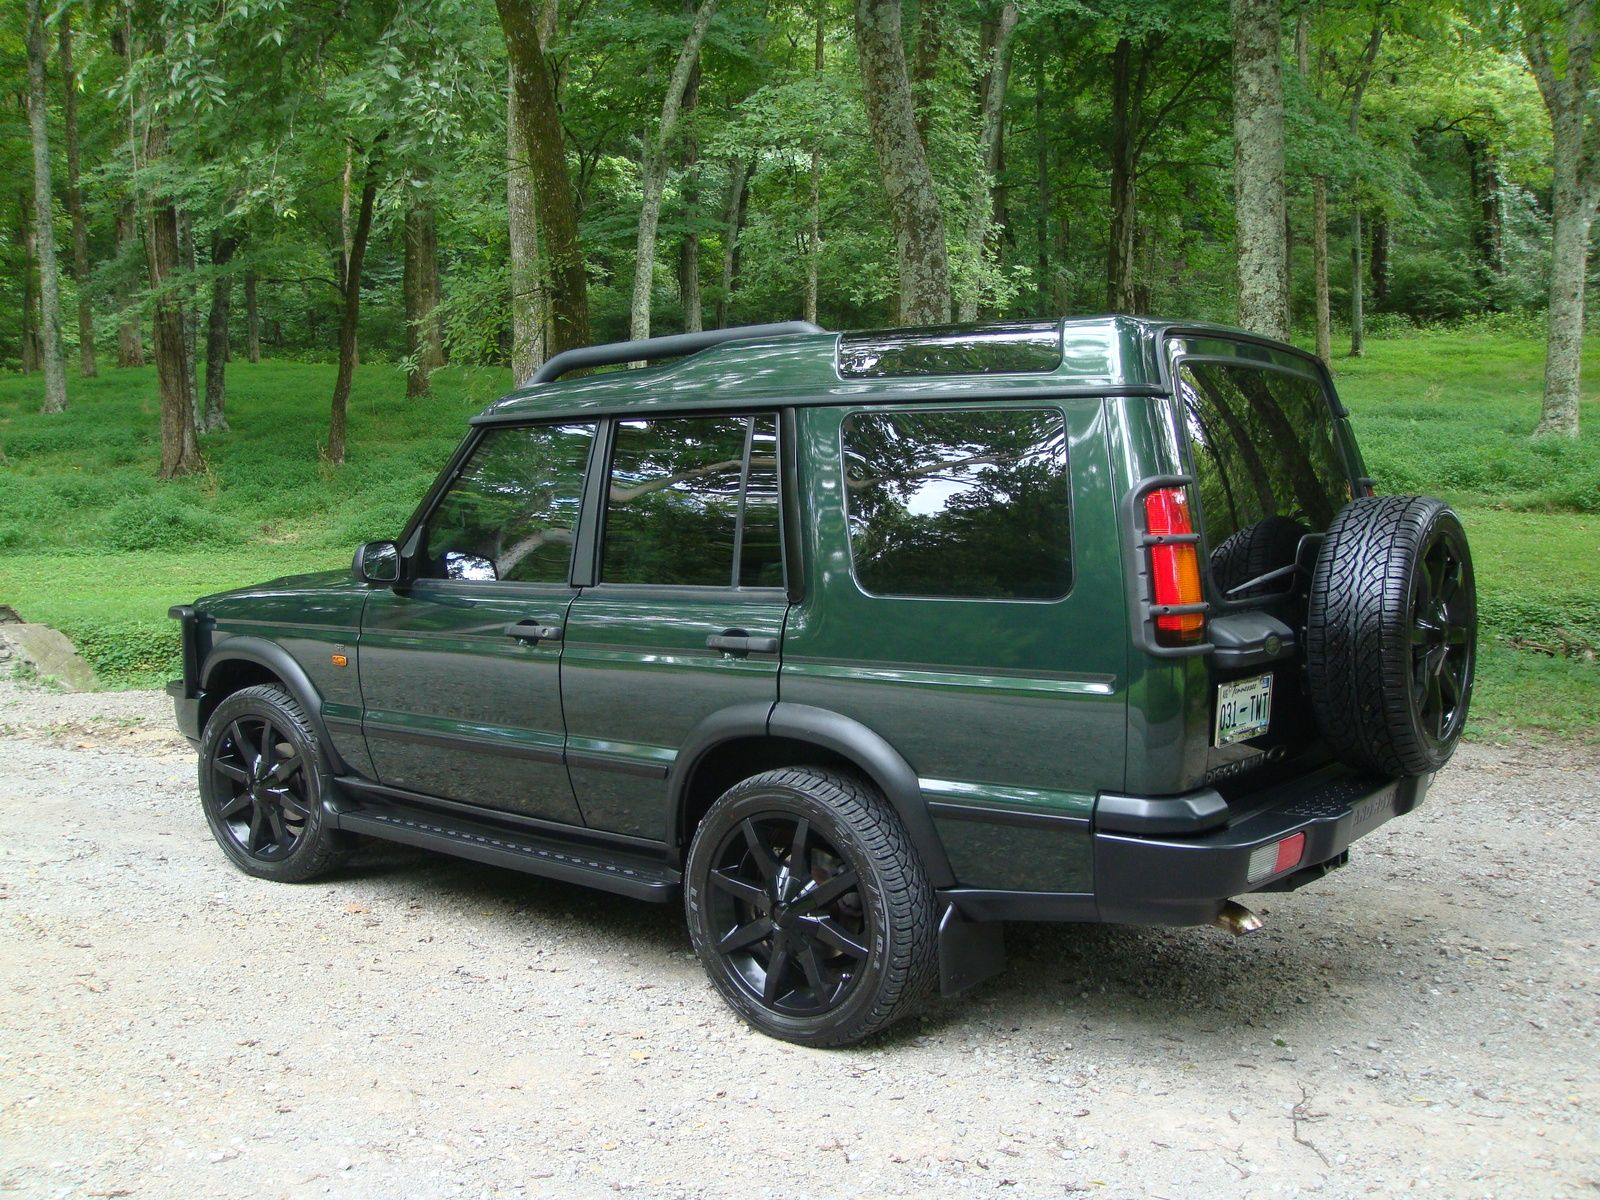 discovery rover landrover rovers cars se speed and land bing images pin pinterest pic green hi